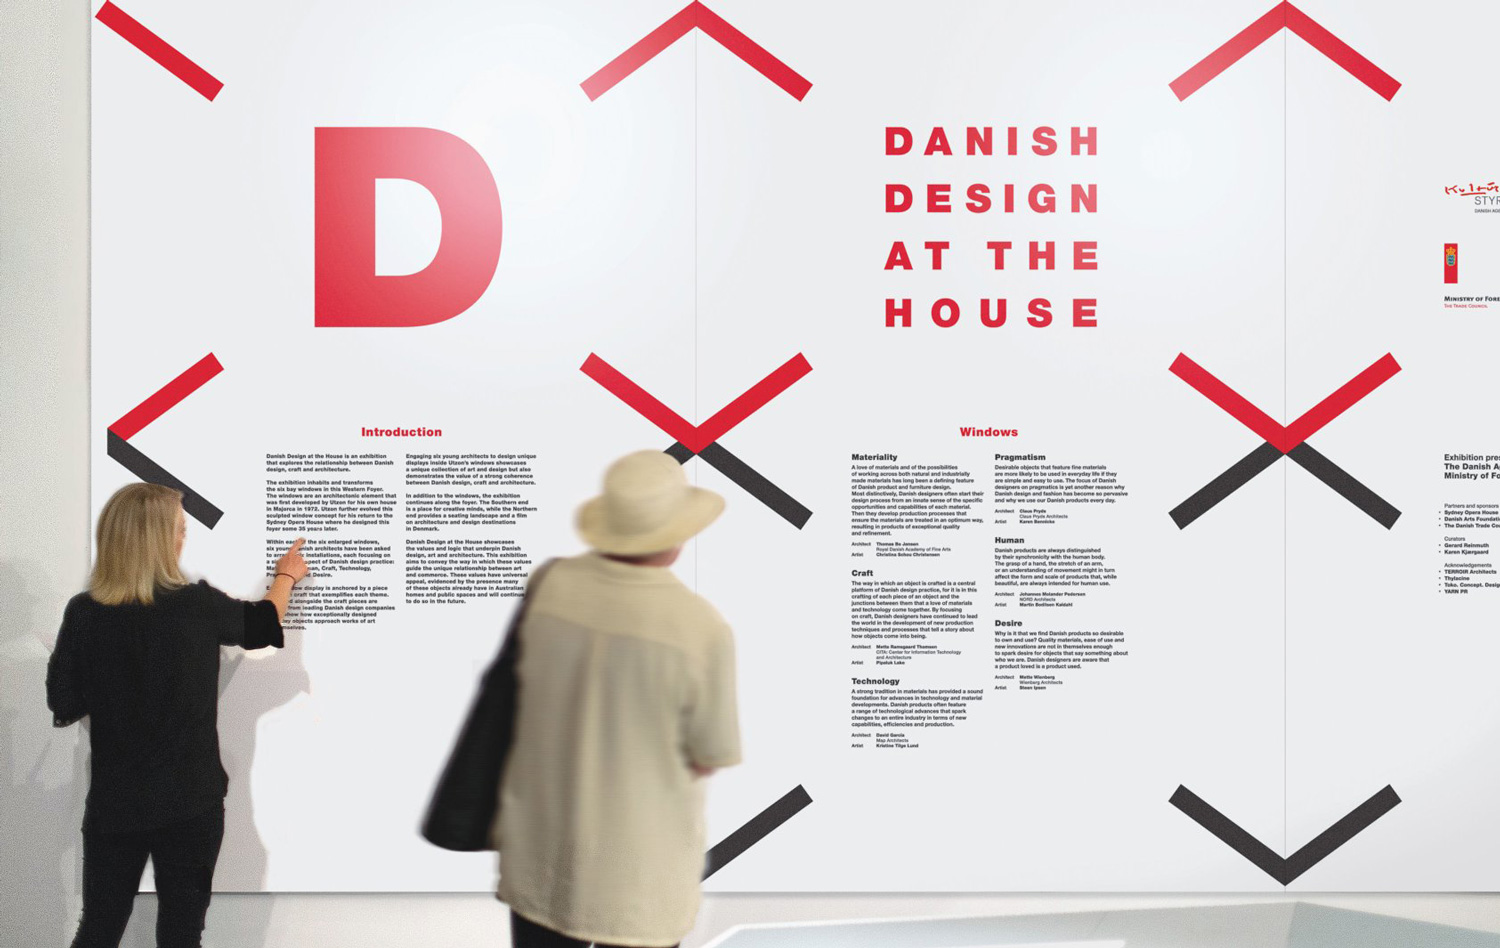 Danish Design Exhibition Branding, Deign by Toko | Yellowtrace